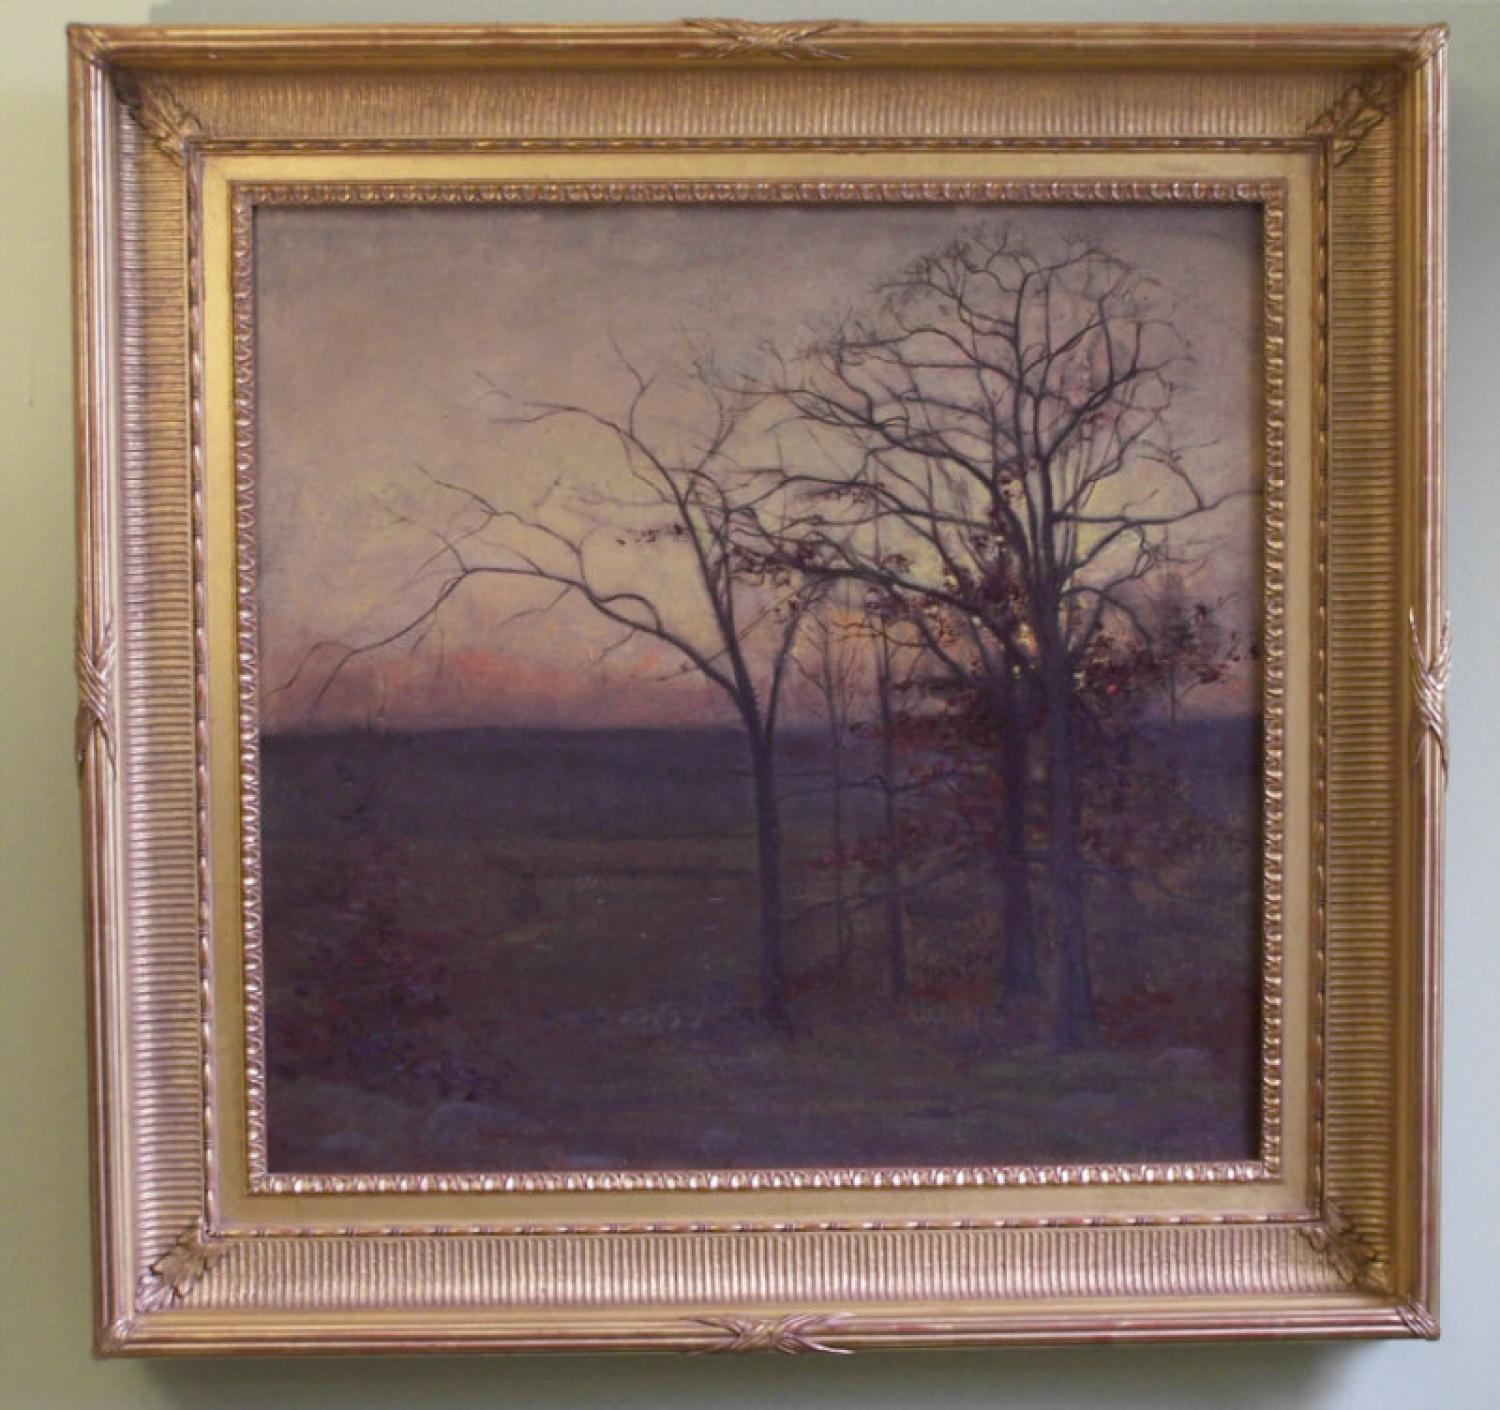 Fannie Burr landscape oil painting on canvas c1880